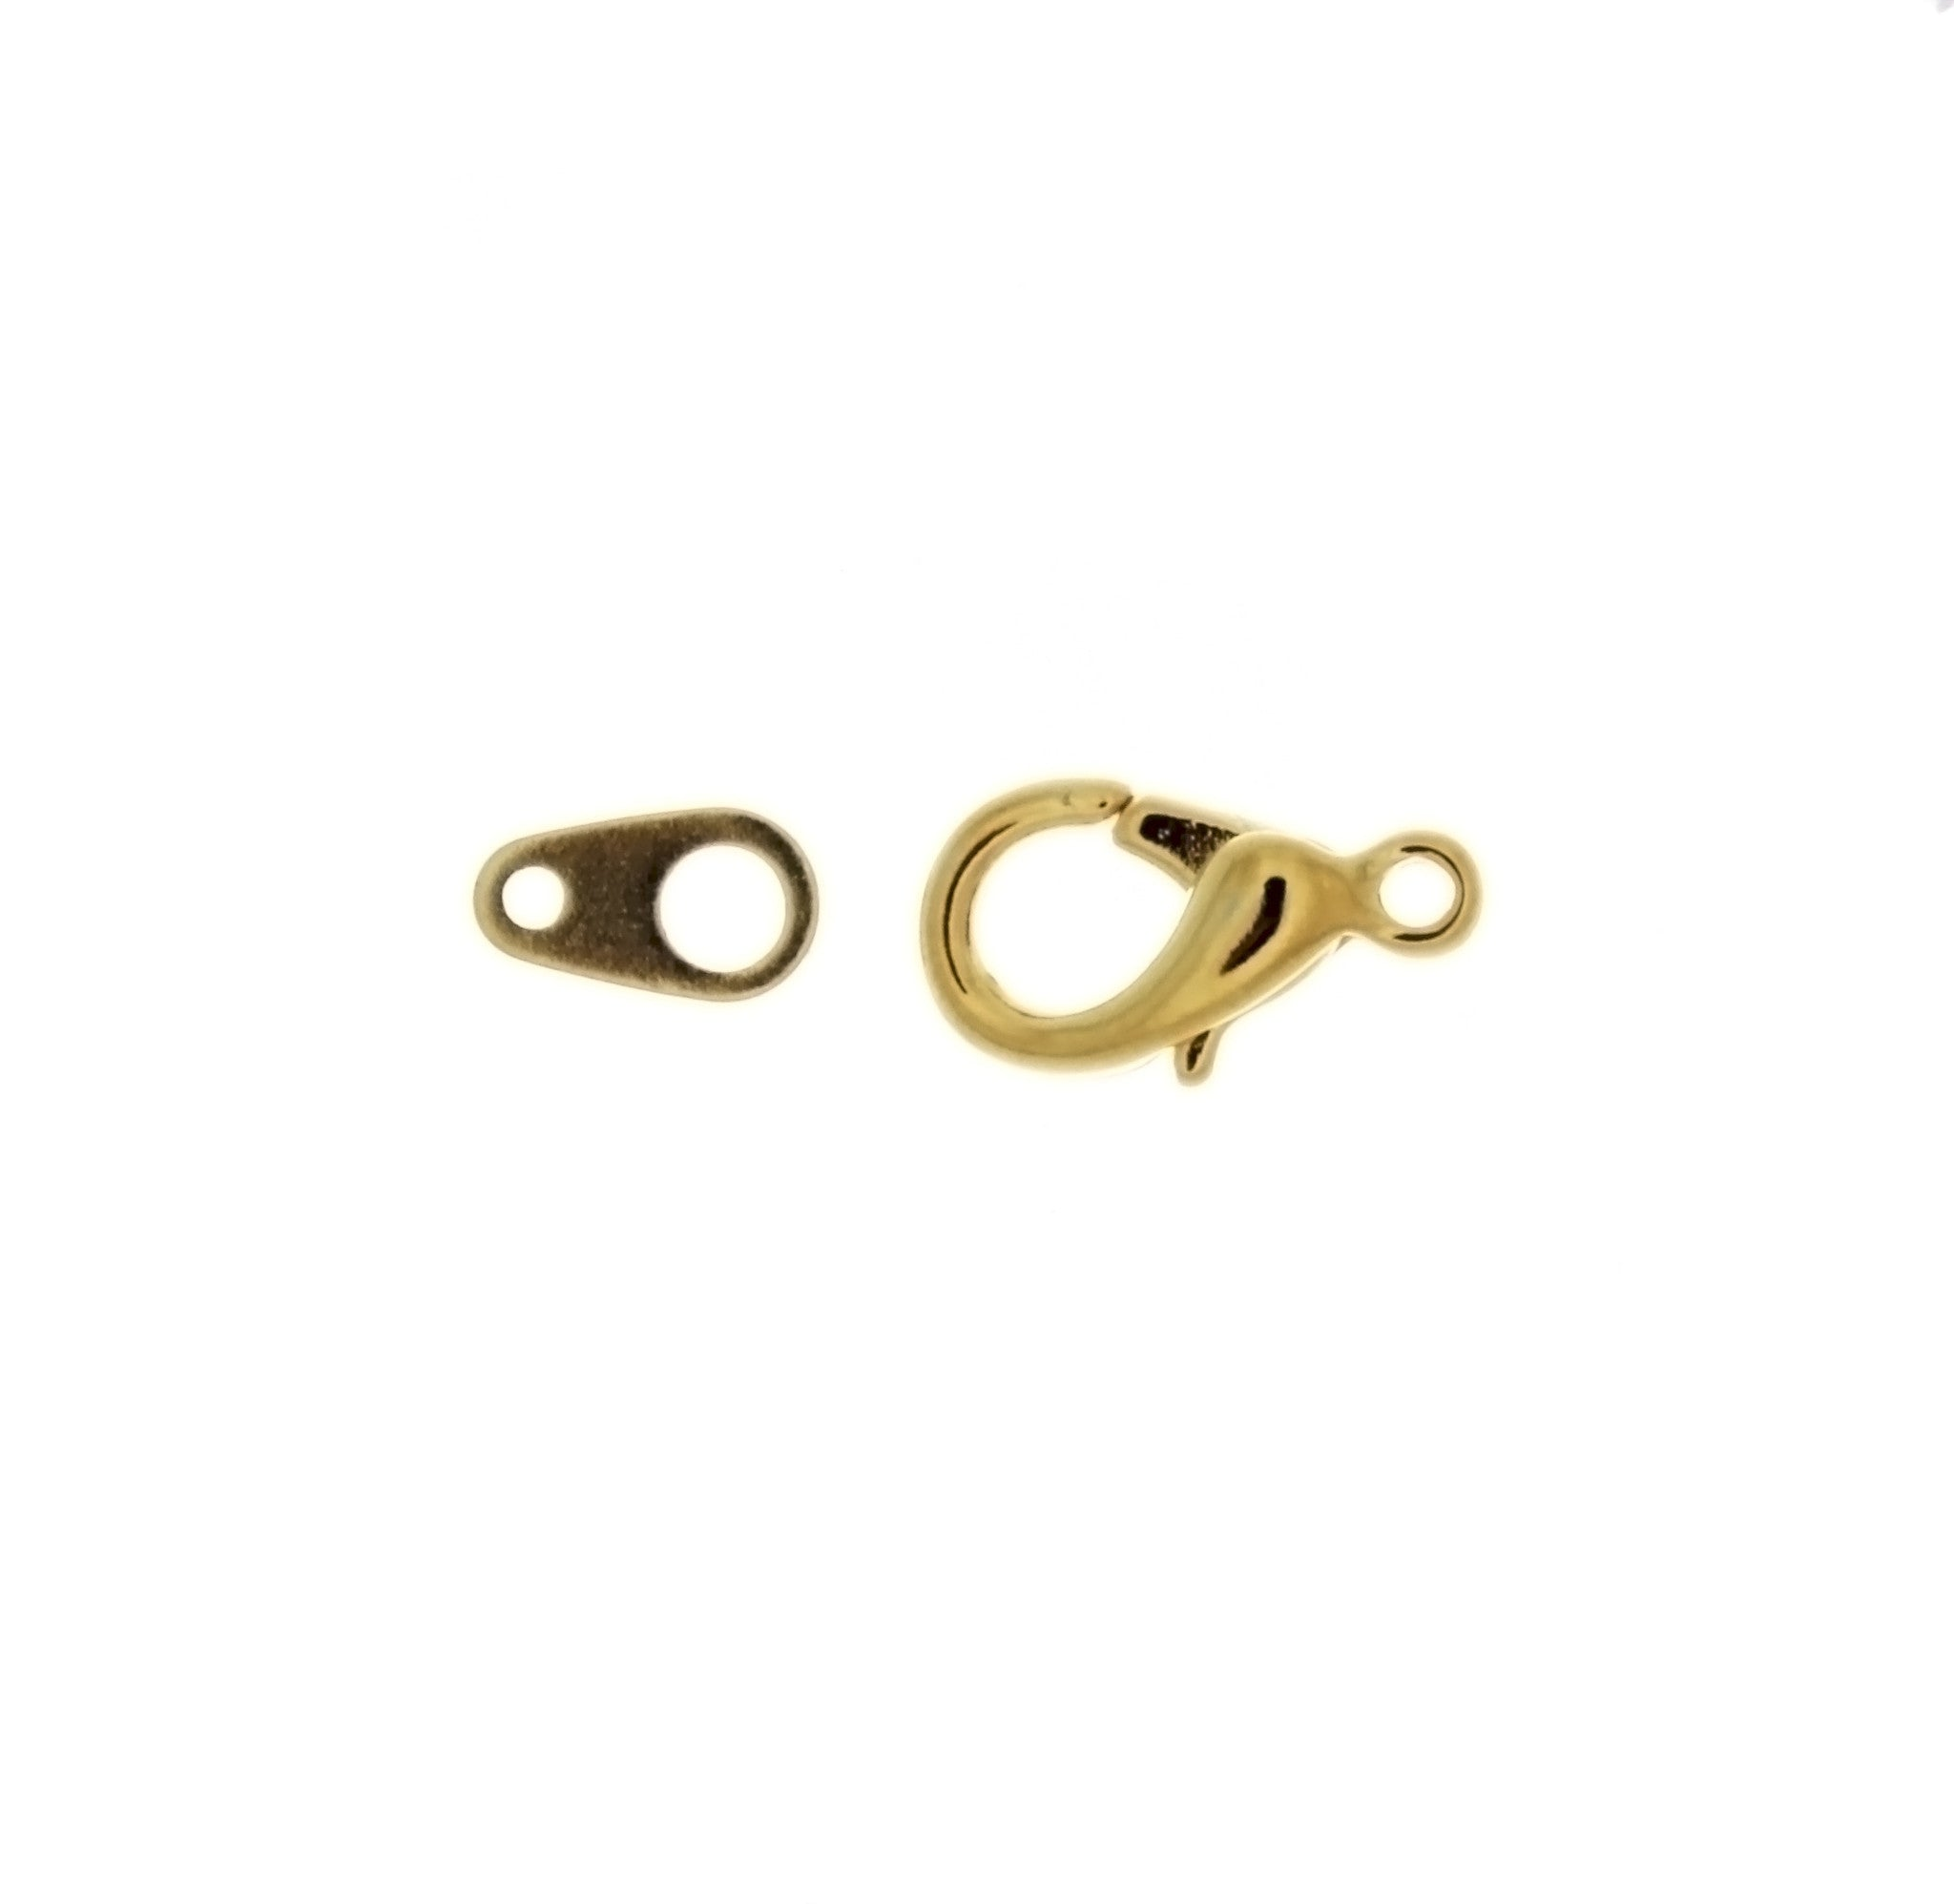 CLASP LOBSTER CLAW 14 MM FINDING (1 DOZ)